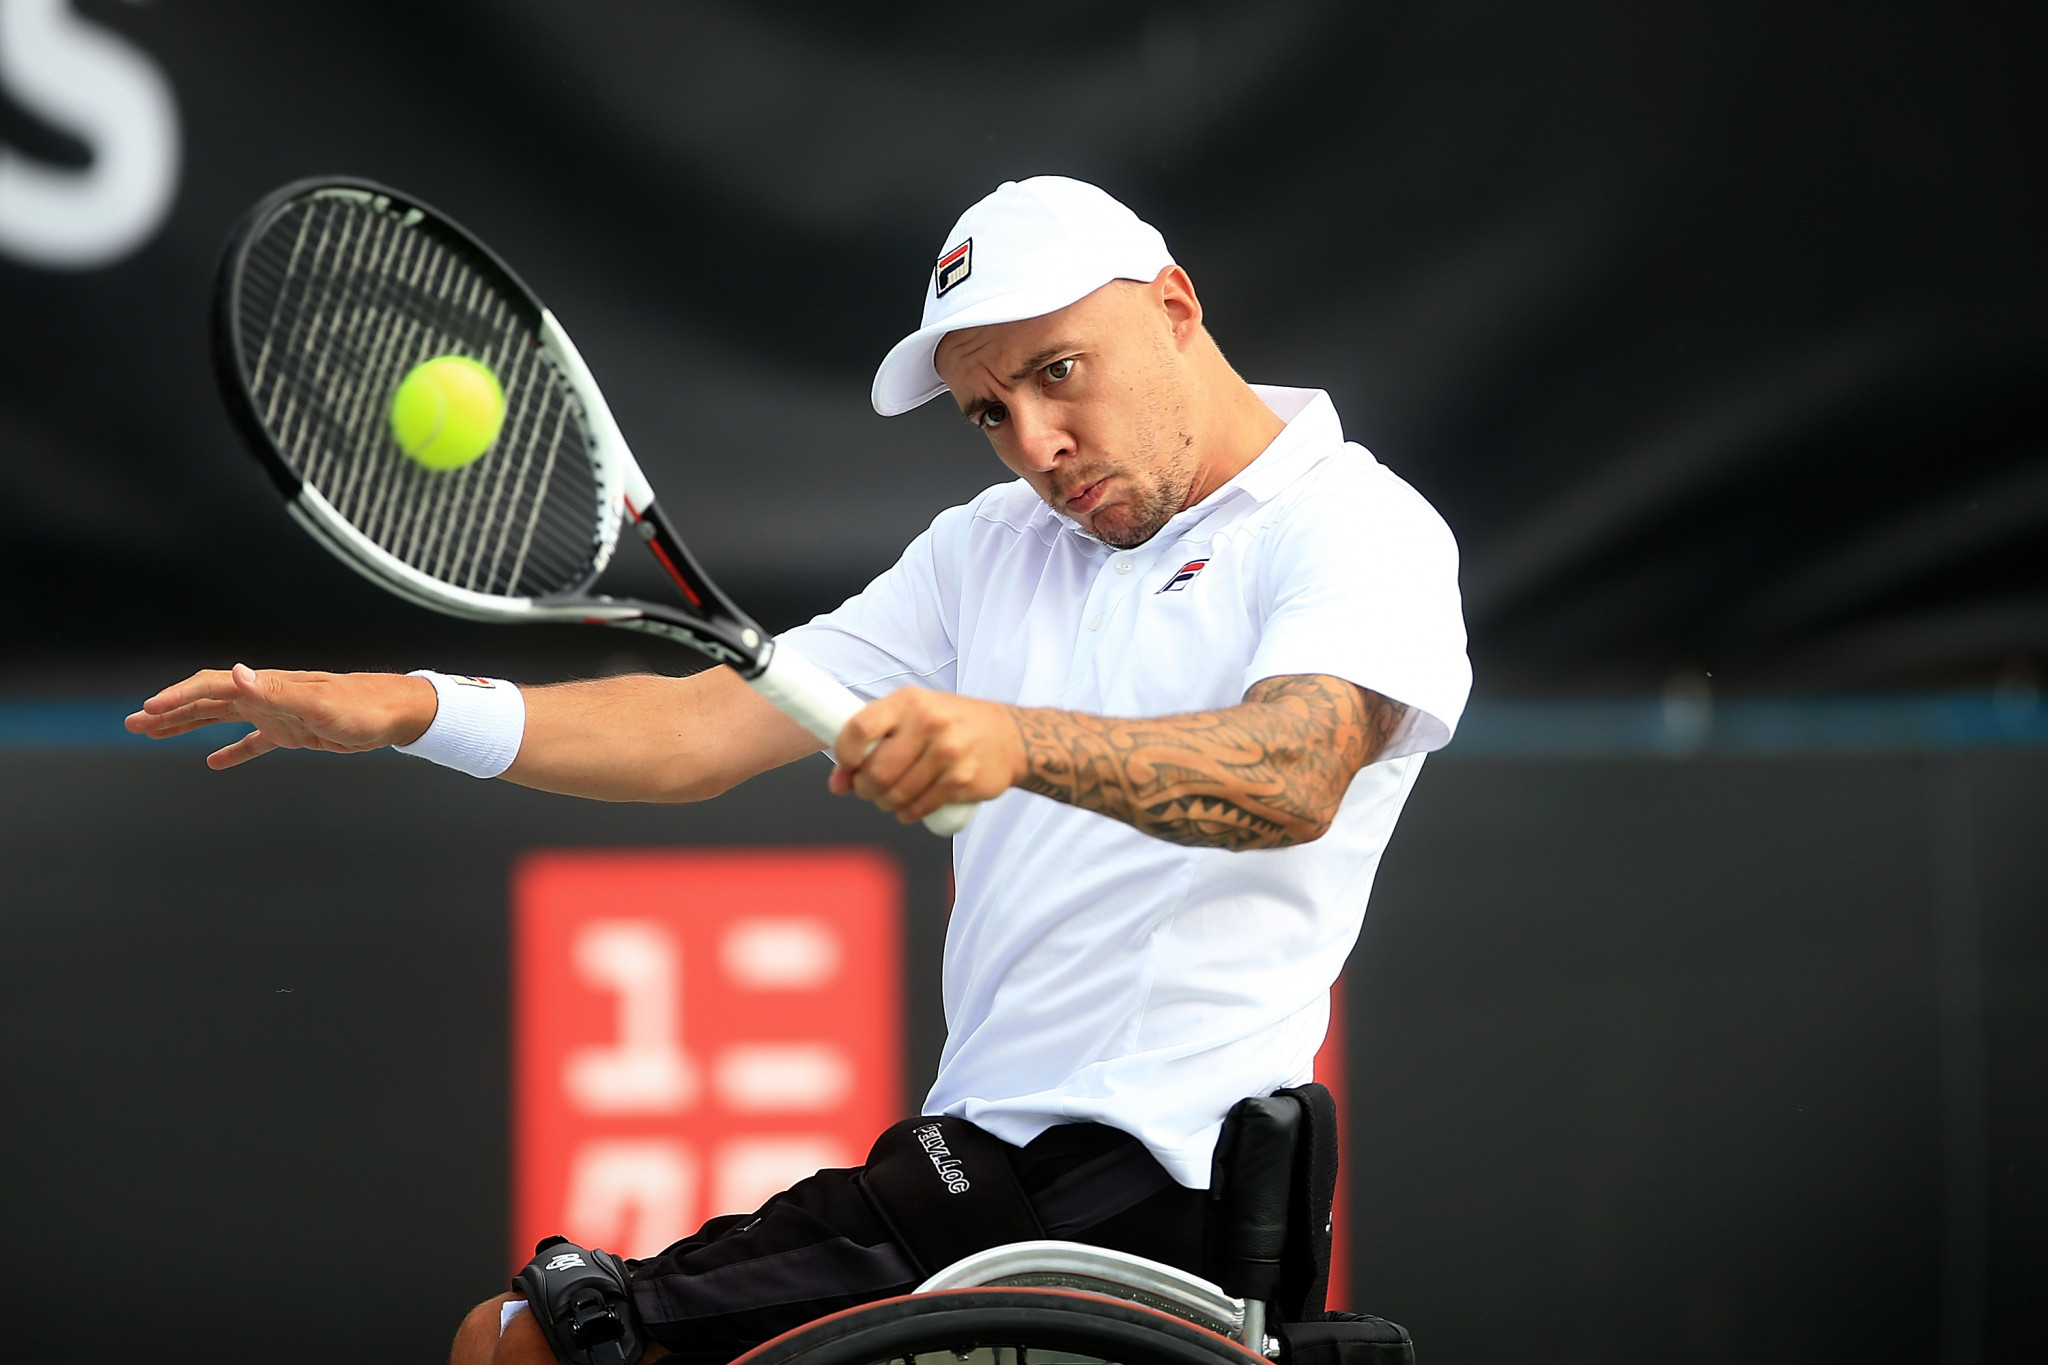 Andy Lapthrone was one of many British players in action on day two of the British Open Wheelchair Tennis Championships in Nottingham ©Getty Images